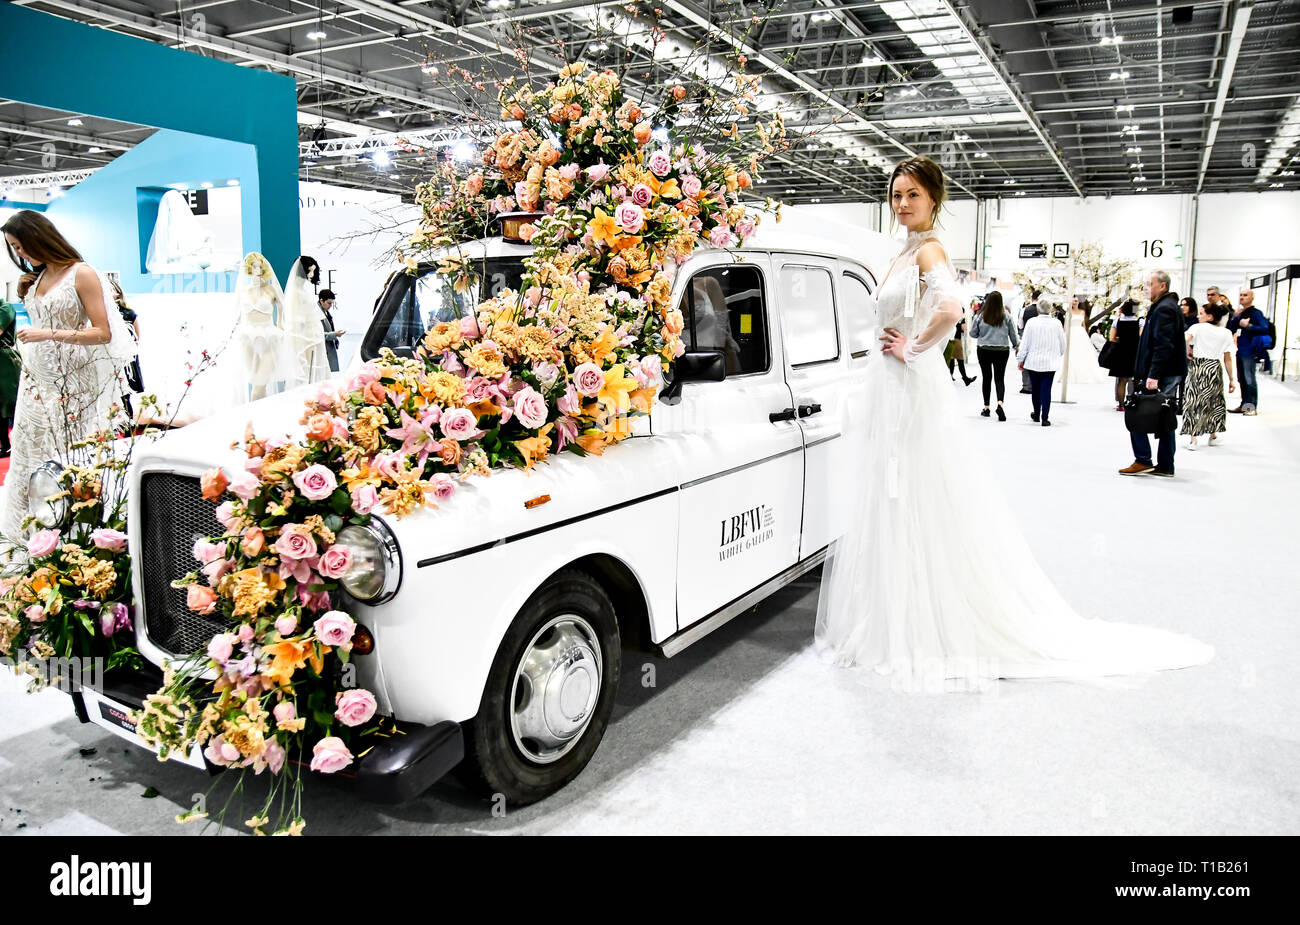 London, UK. 25th Mar 2019. Exhibitor and Model showcases at London Bridal Fashion Week at London Excel on 25 March 2019, UK. Credit: Picture Capital/Alamy Live News - Stock Image